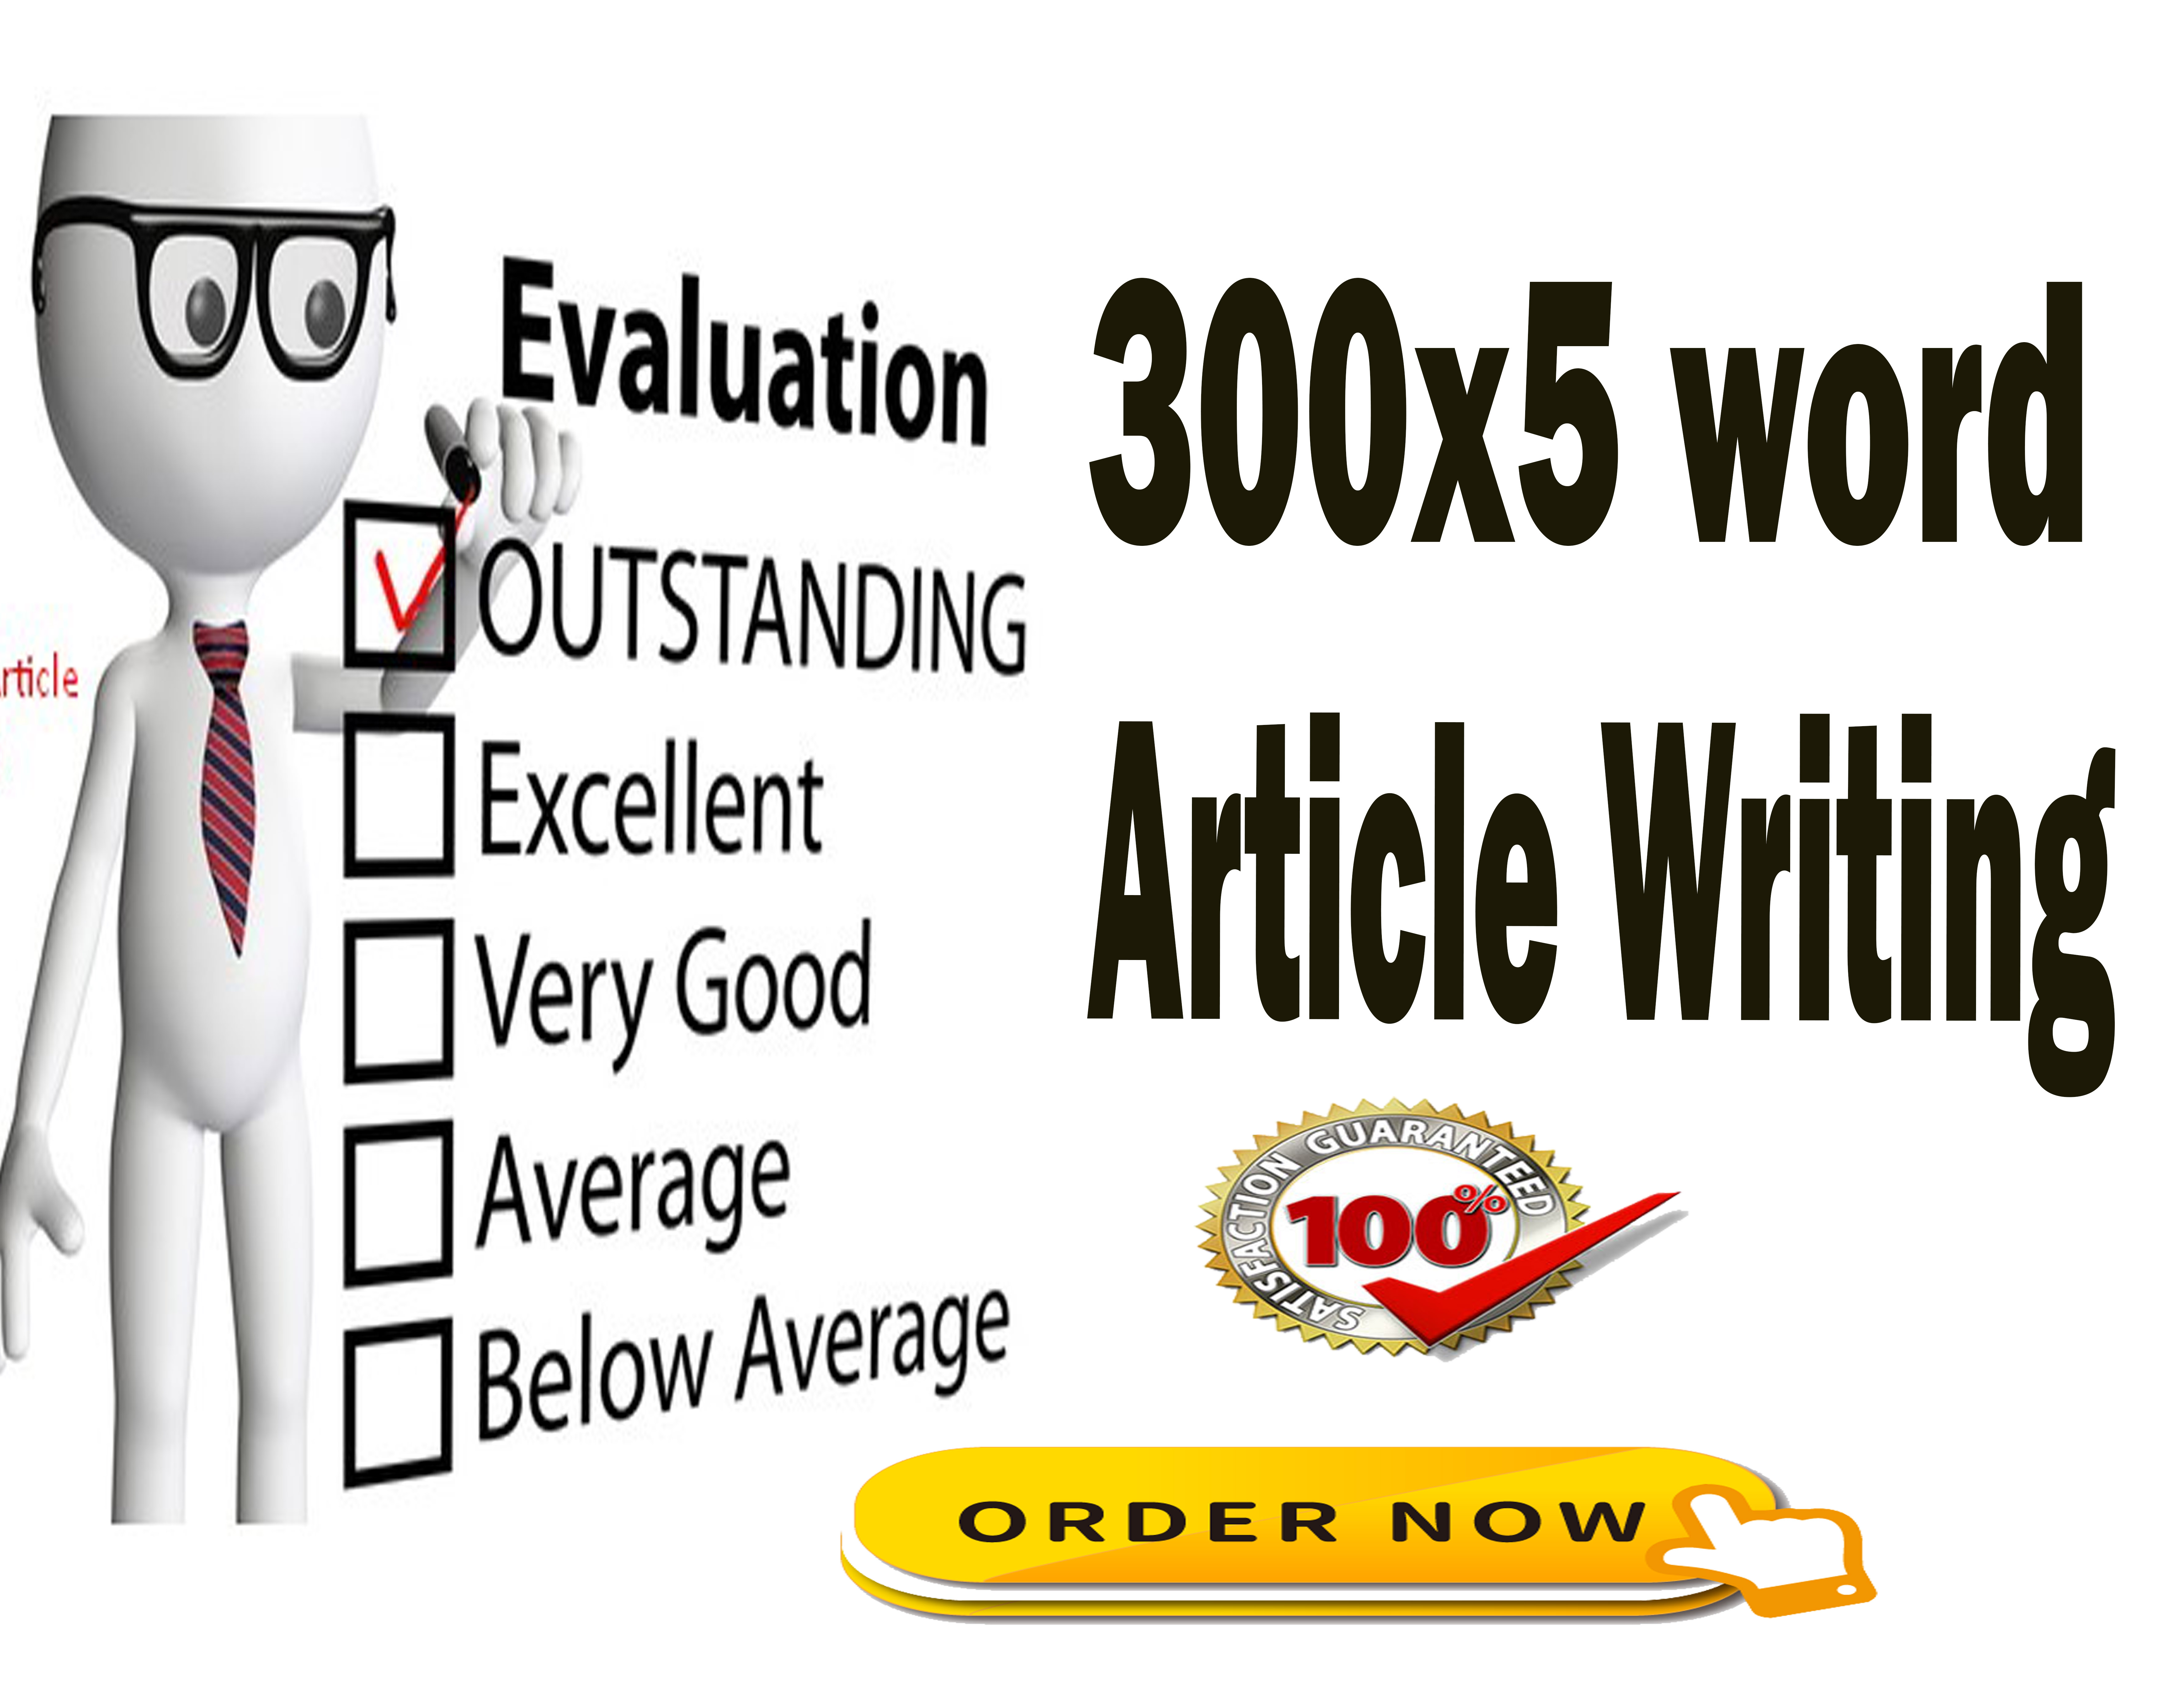 do best writing 300x5 word article writing or content writing for any topic